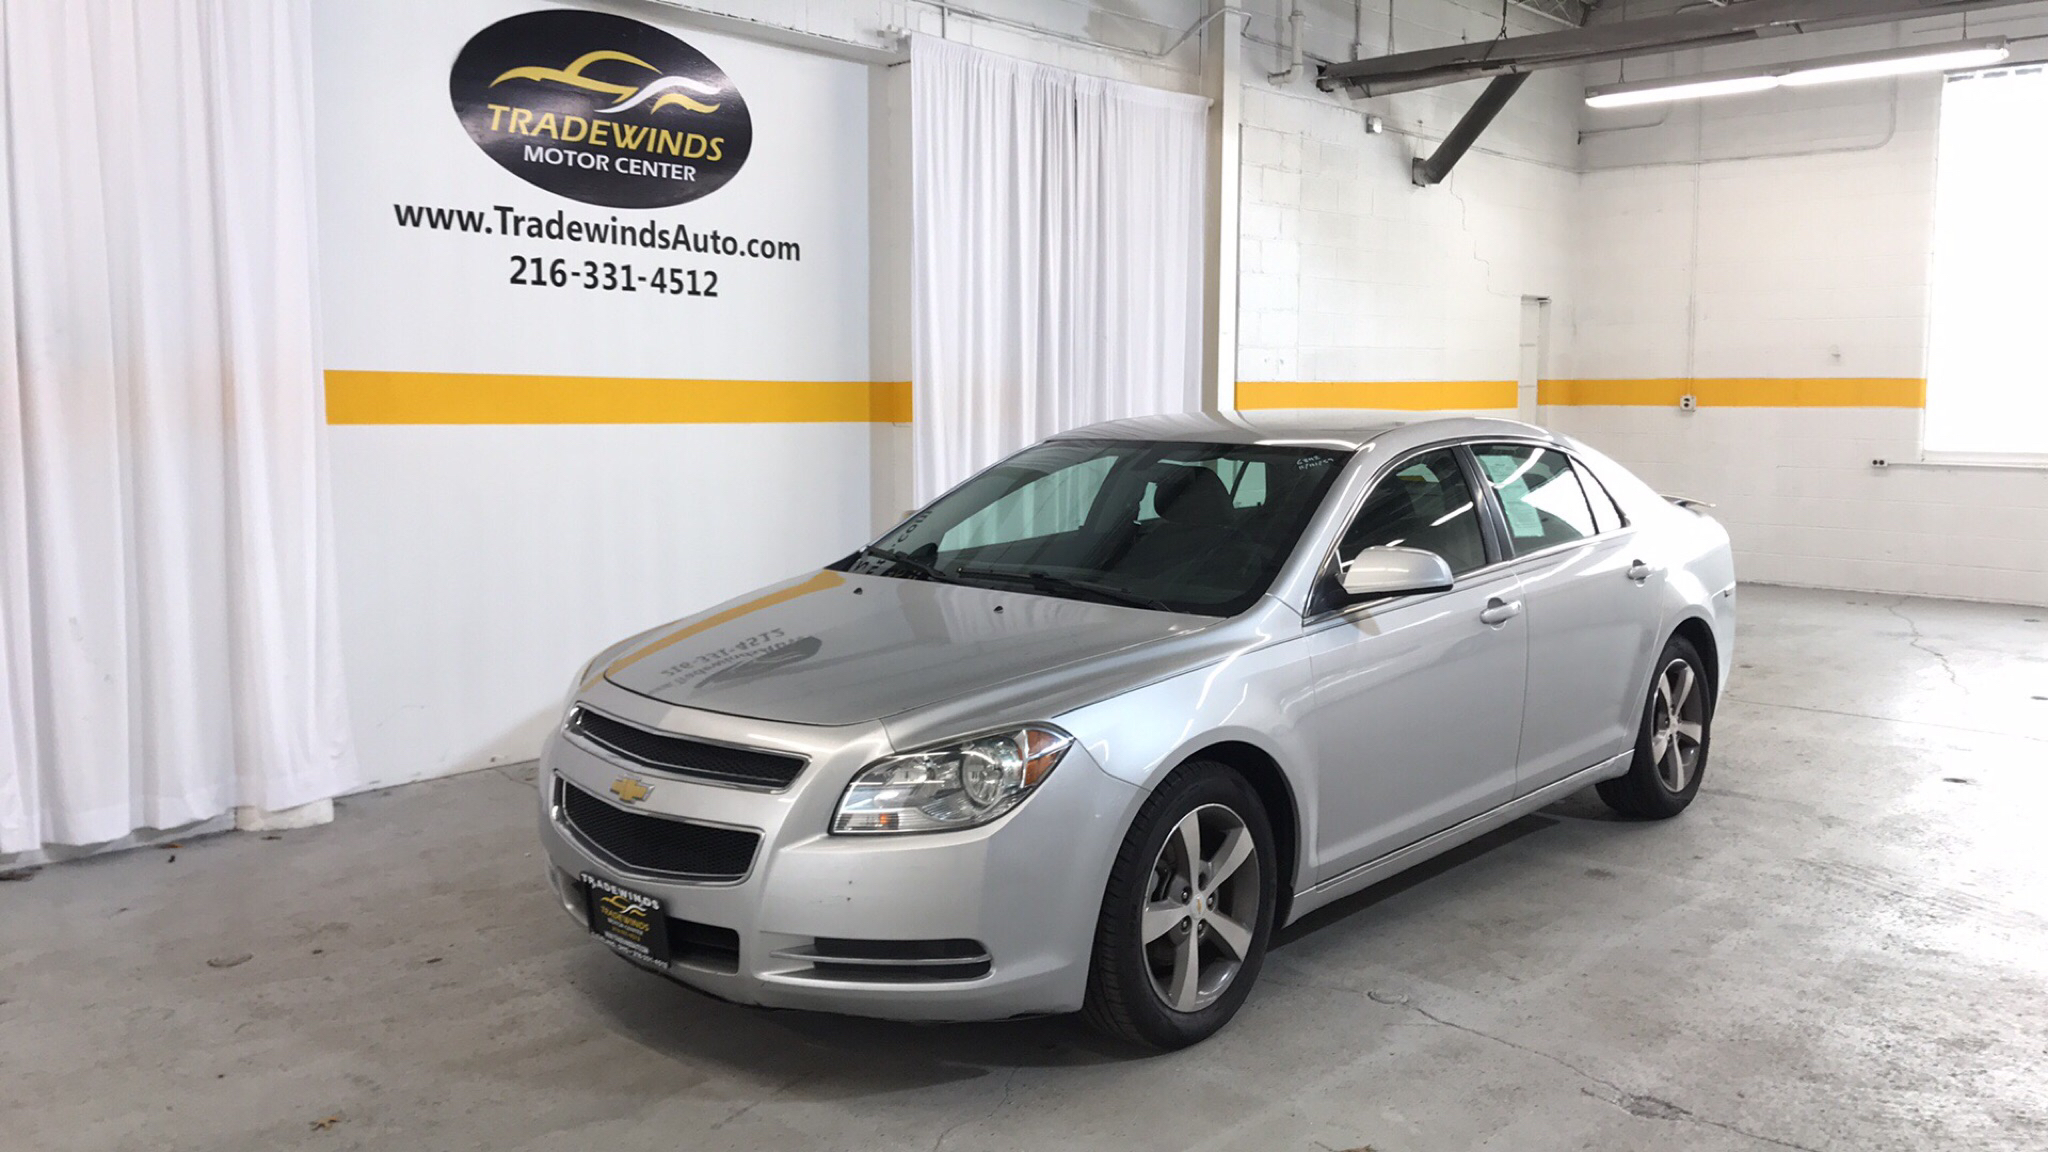 2011 CHEVROLET MALIBU 1LT for sale at Tradewinds Motor Center